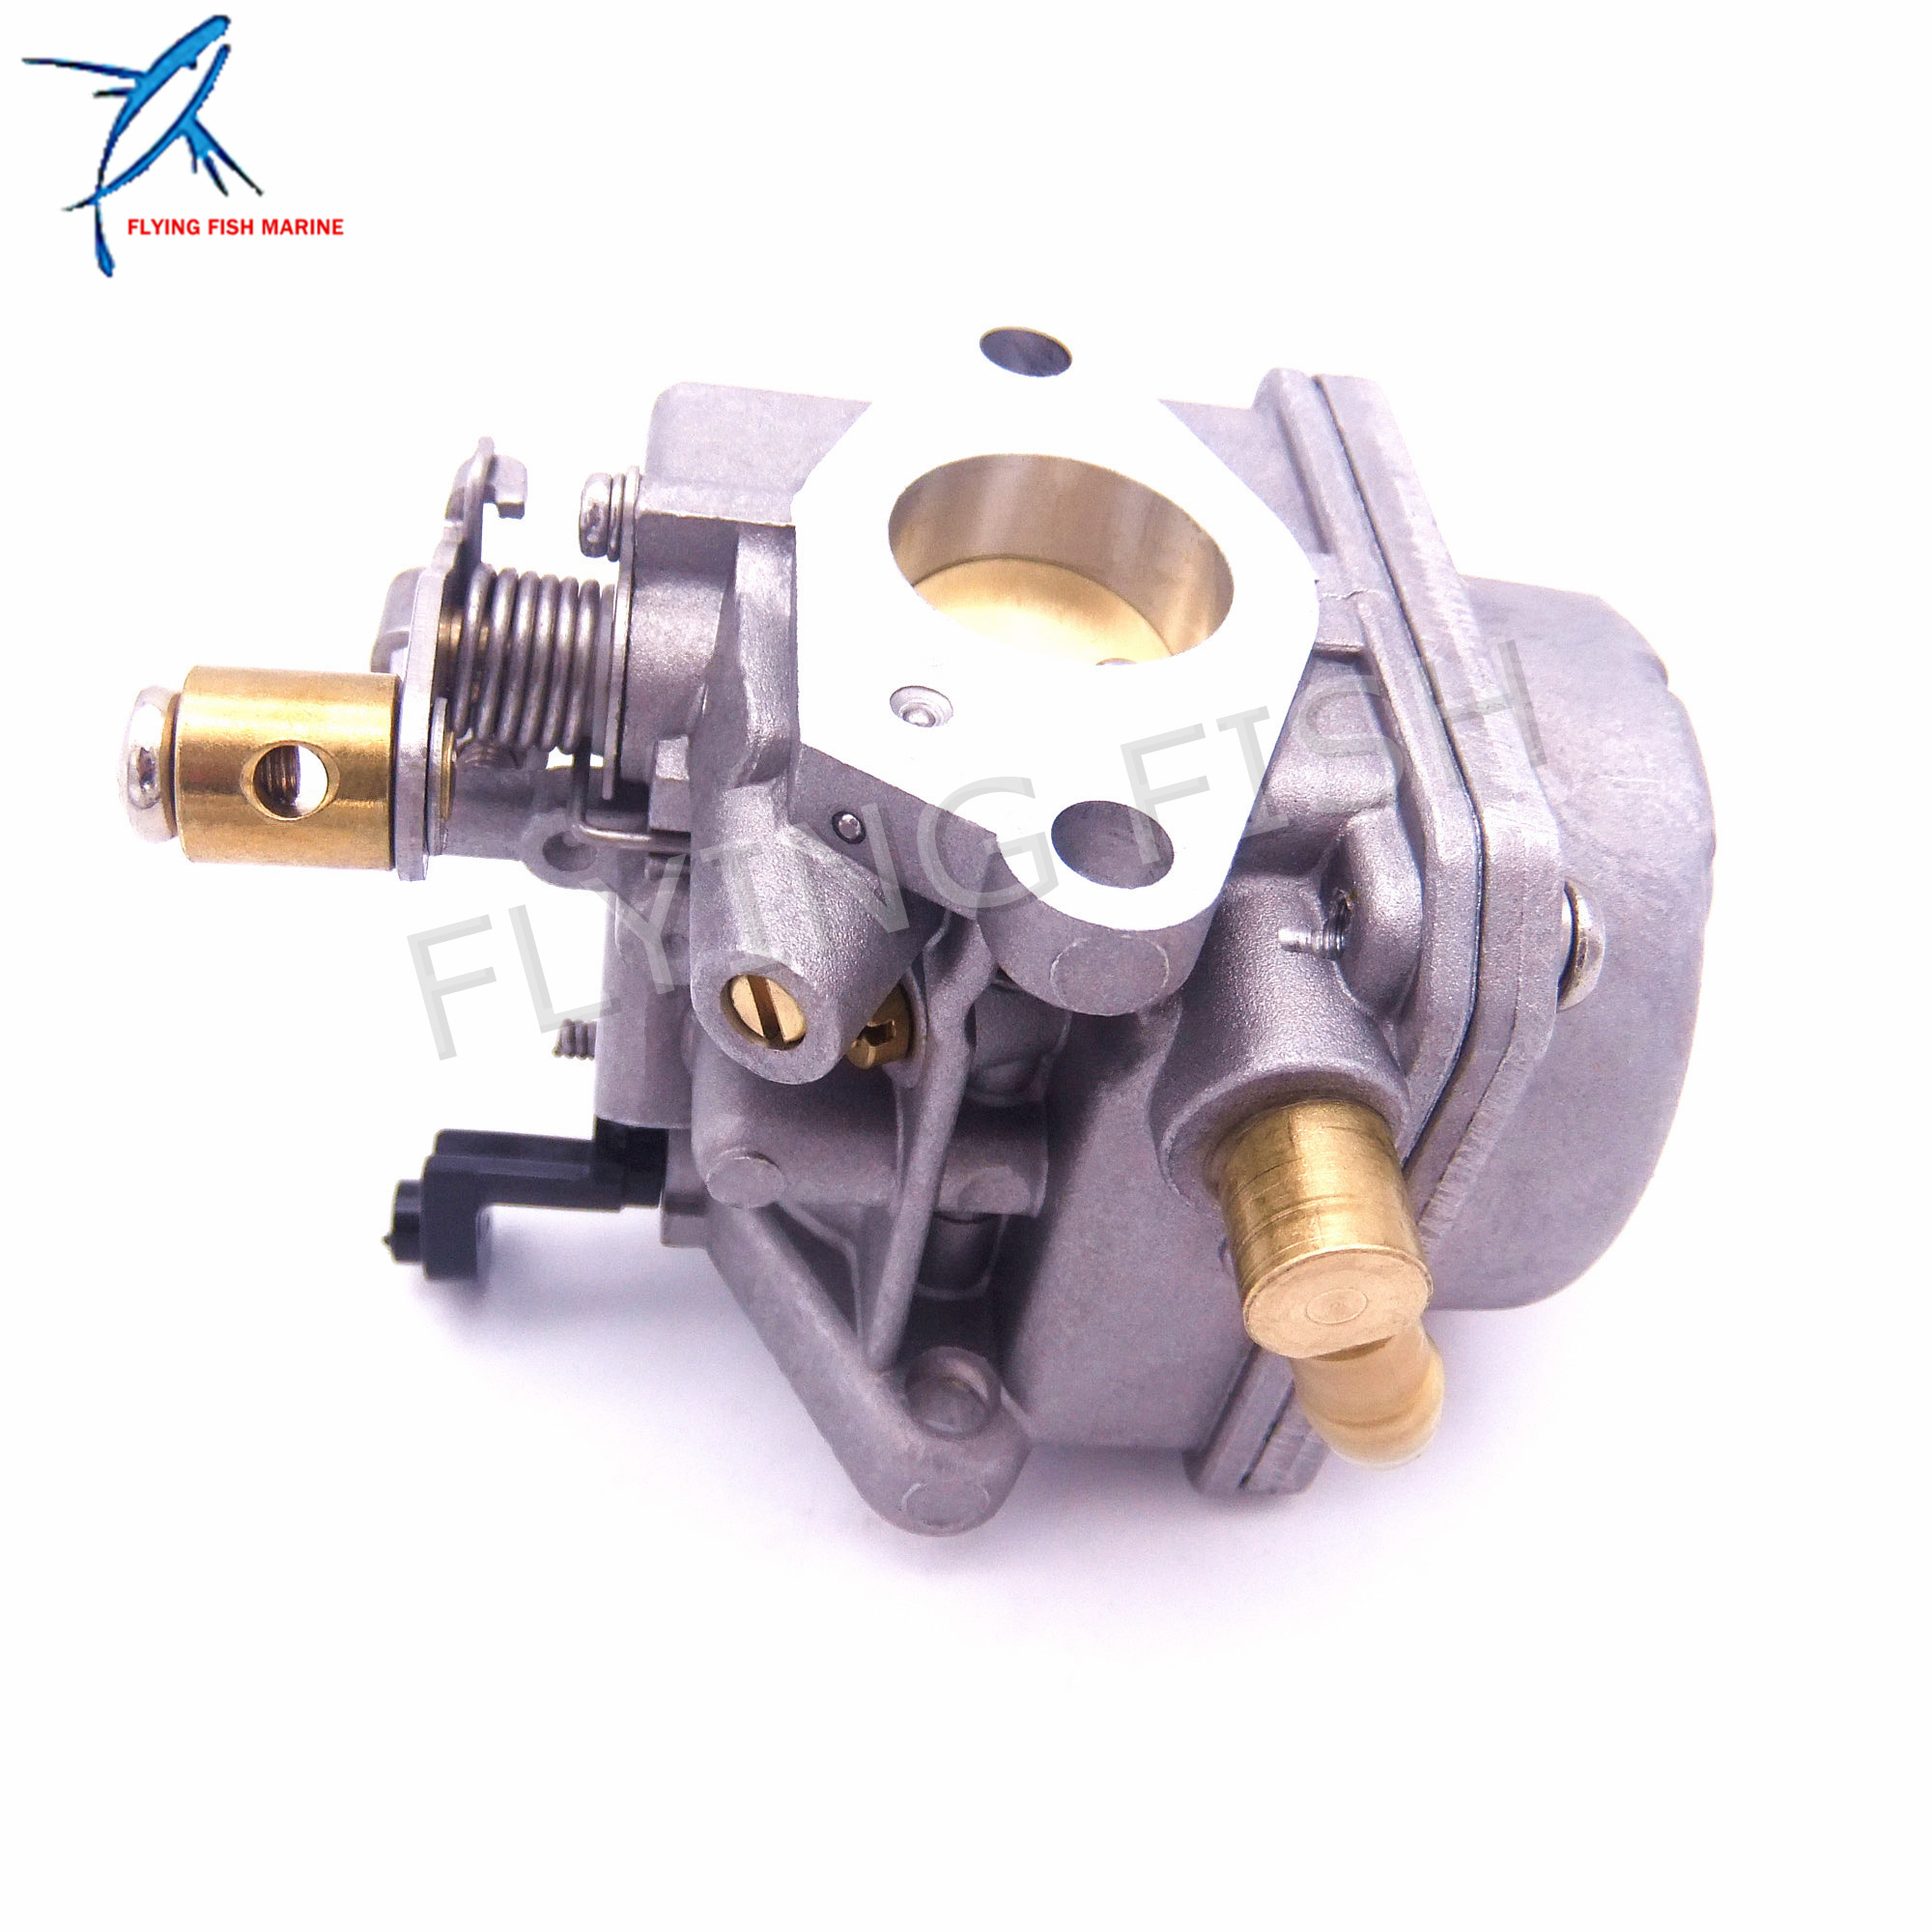 Outboard Engine Carburetor Assy 6BX 14301 10 6BX 14301 11 6BX 14301 00 for Yamaha 4 stroke F6 Boat Motor Free Shipping-in Boat Engine from Automobiles & Motorcycles